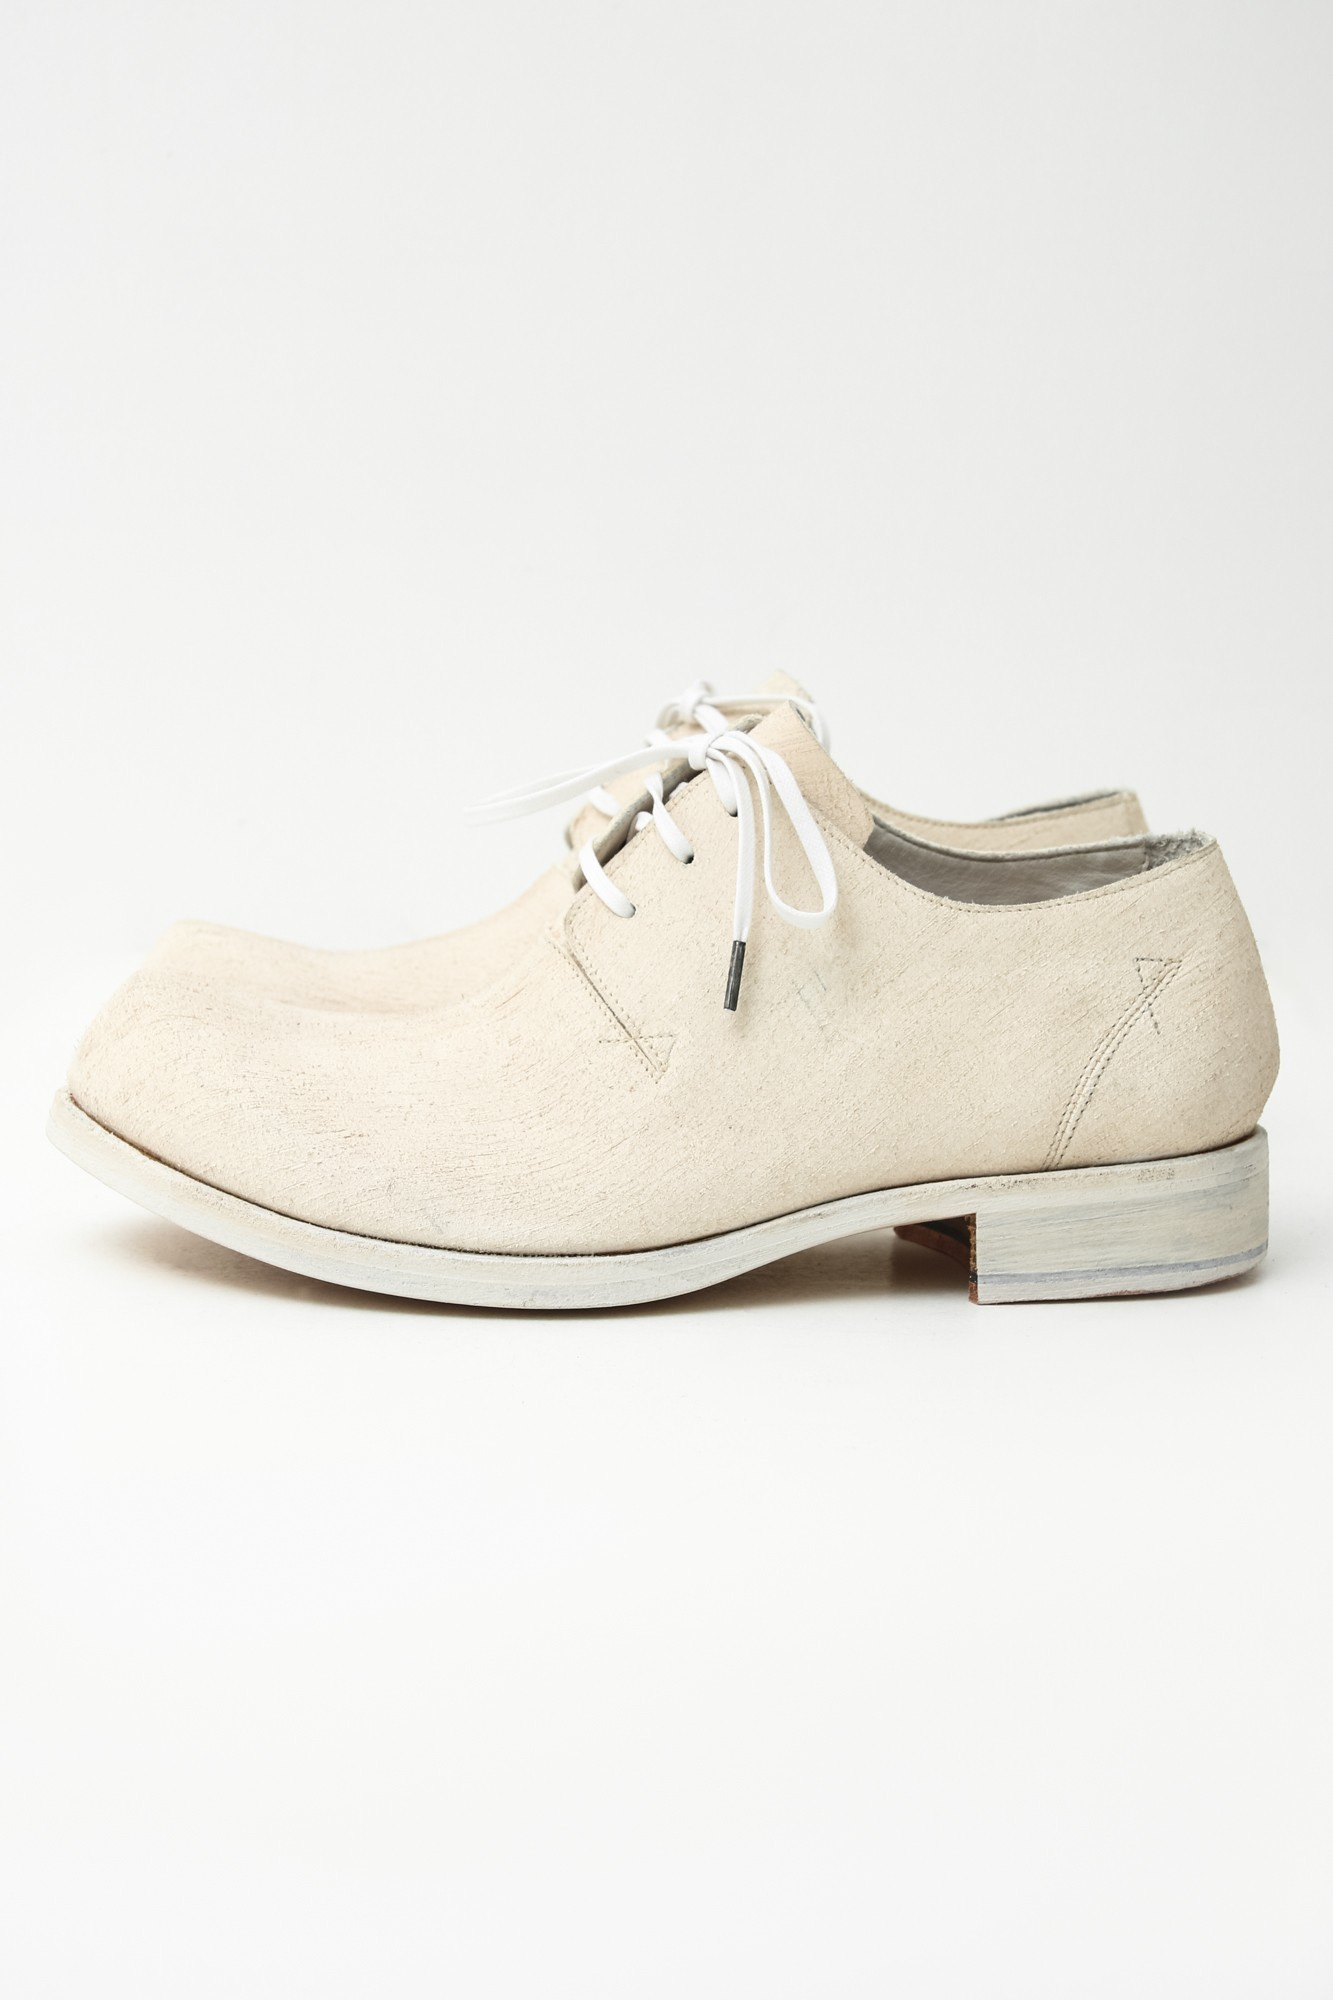 Cow Leather Shoes Pointed Toe